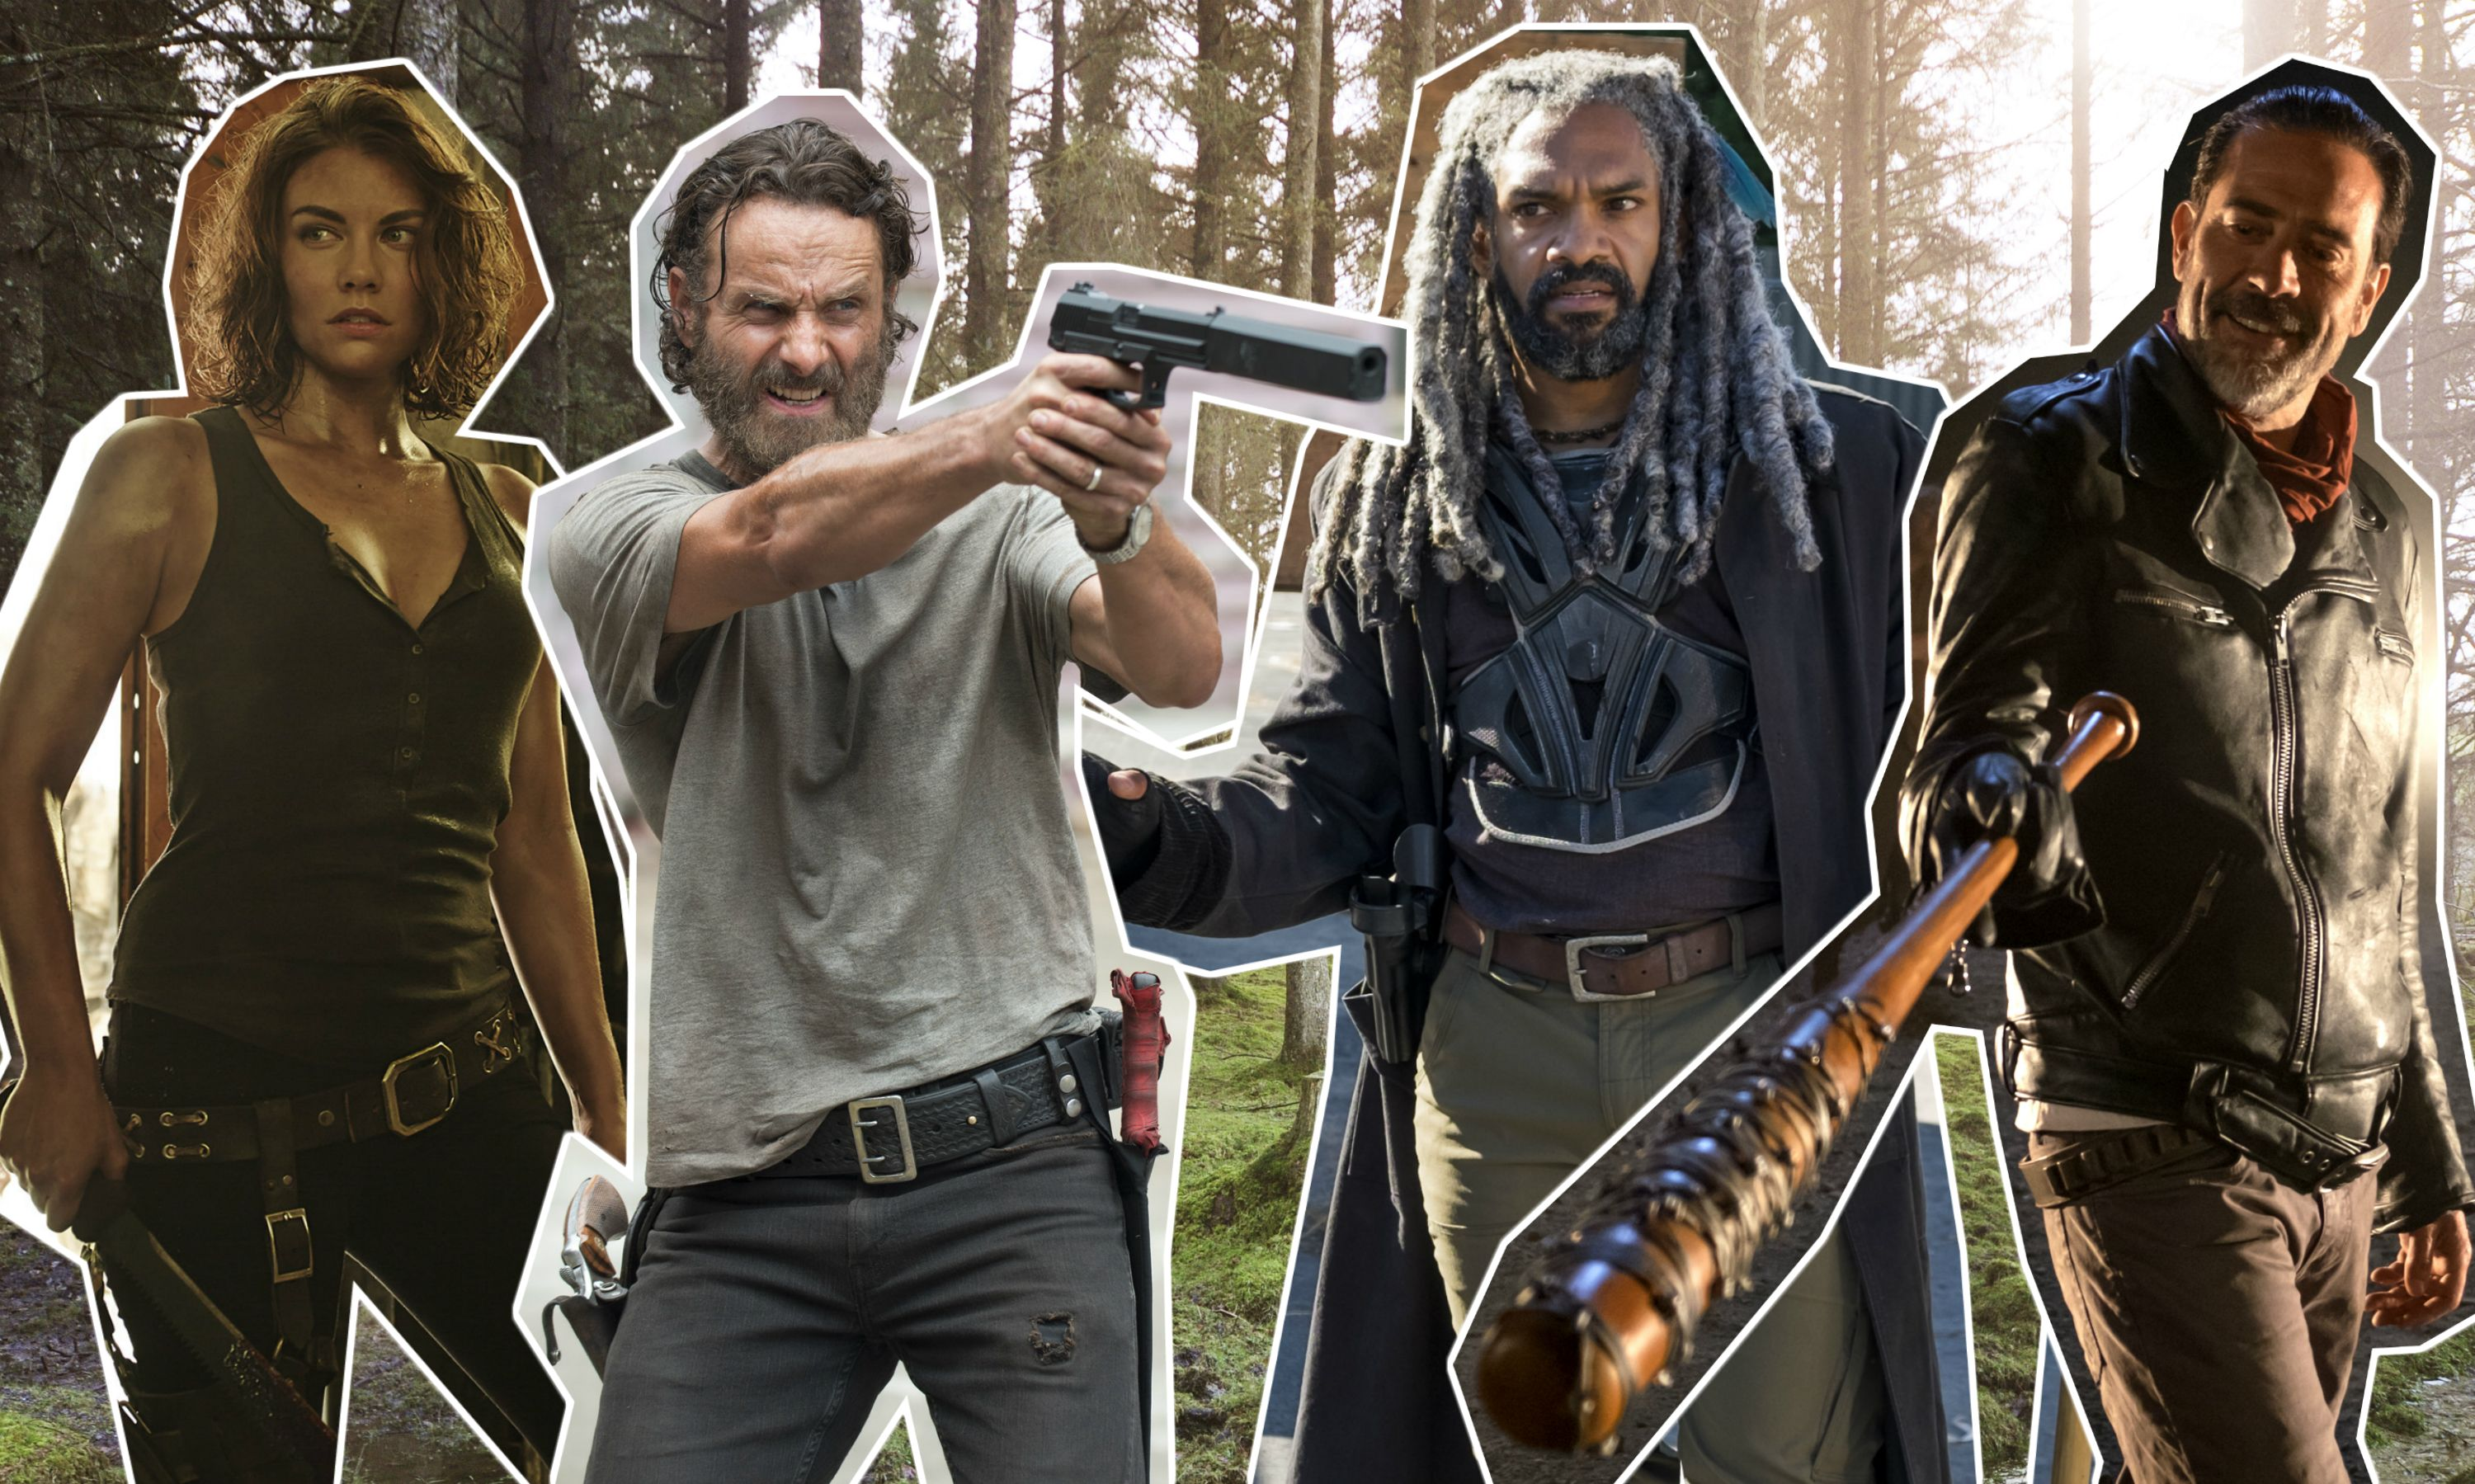 The Walking Dead Season 7 Ranking All 16 Episodes From Worst To Best